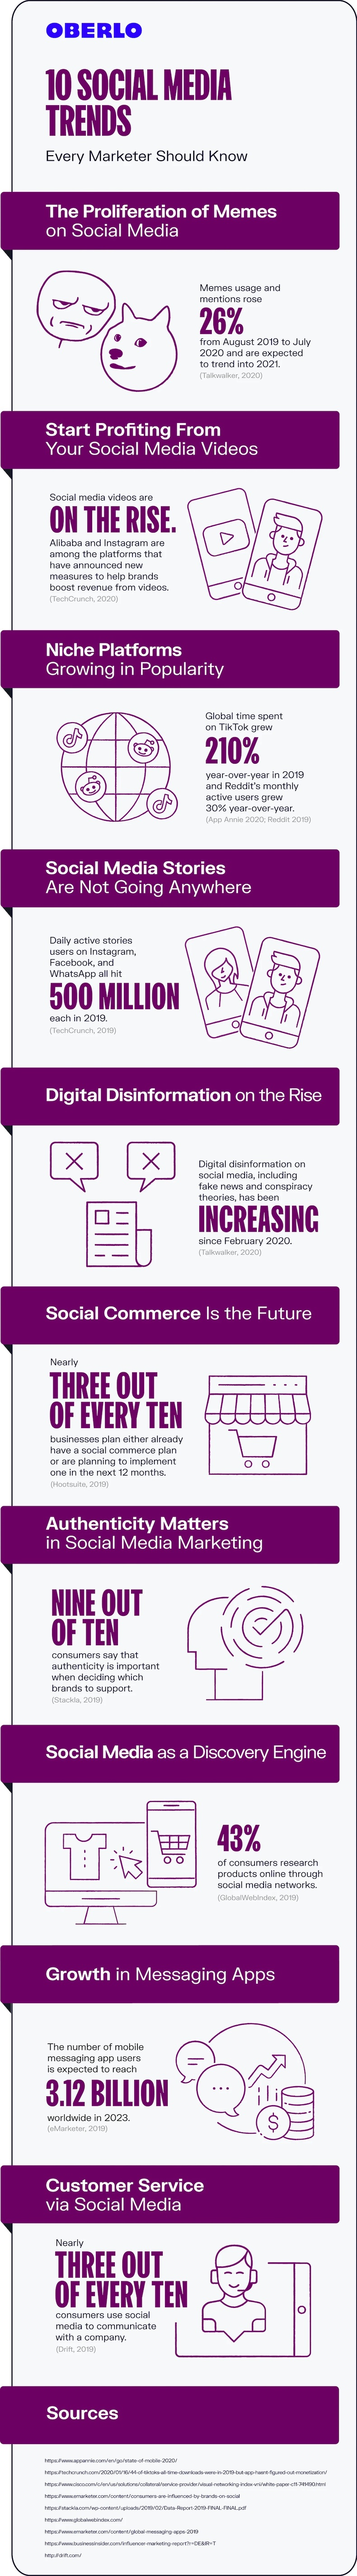 10 Social Media Trends Marketers Should Be Watching Infographic In 2021 Social Media Trends Social Media Infographic Social Media Article